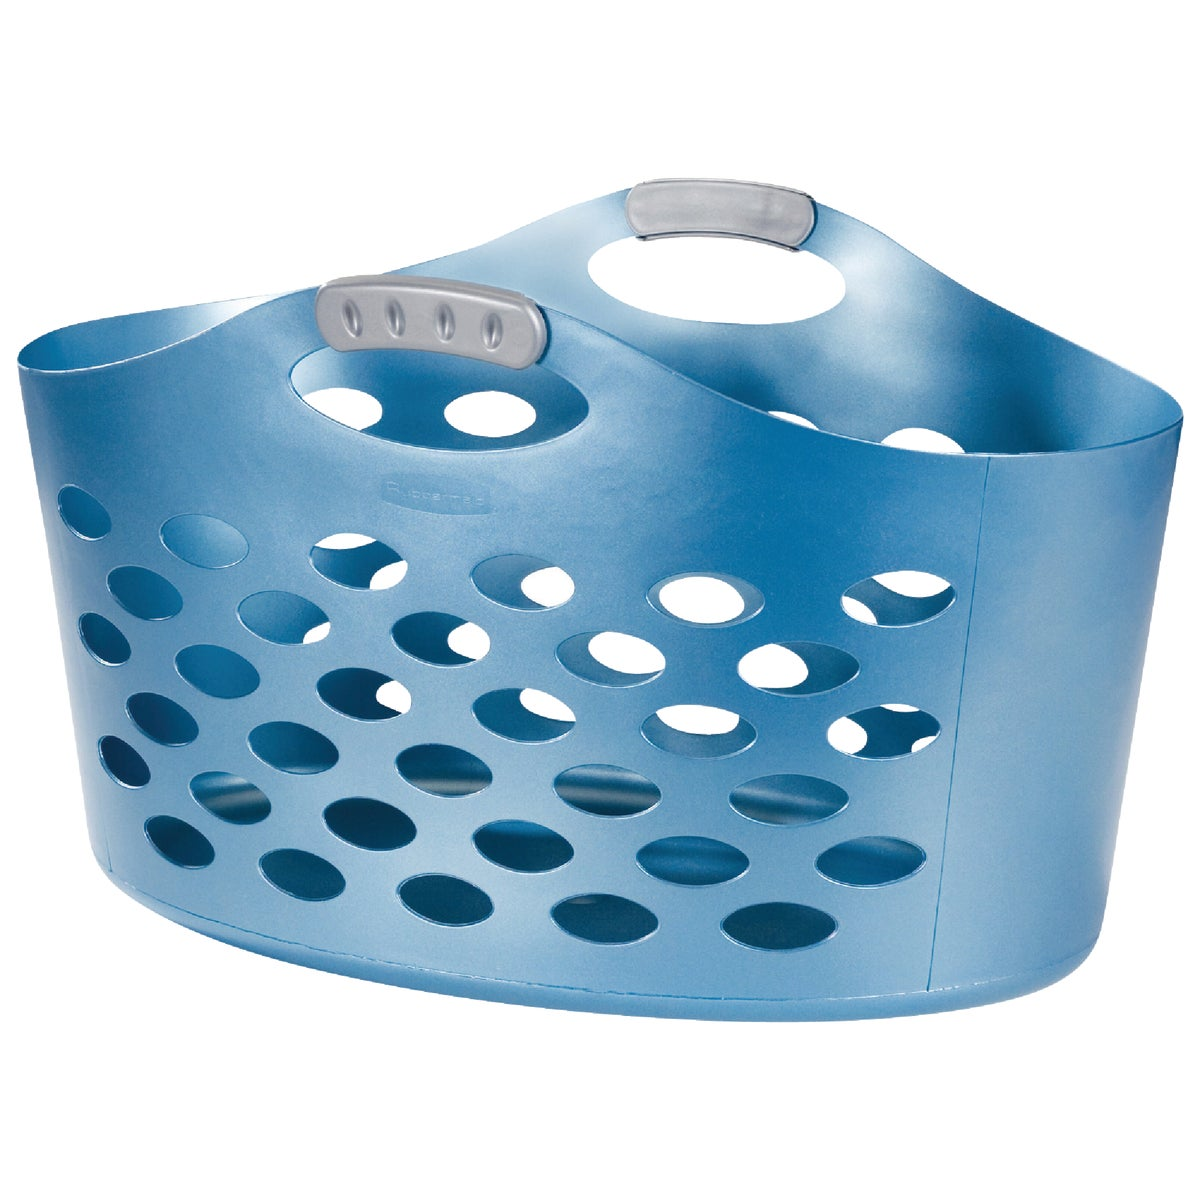 BLUE FLEXNCARRY BASKET